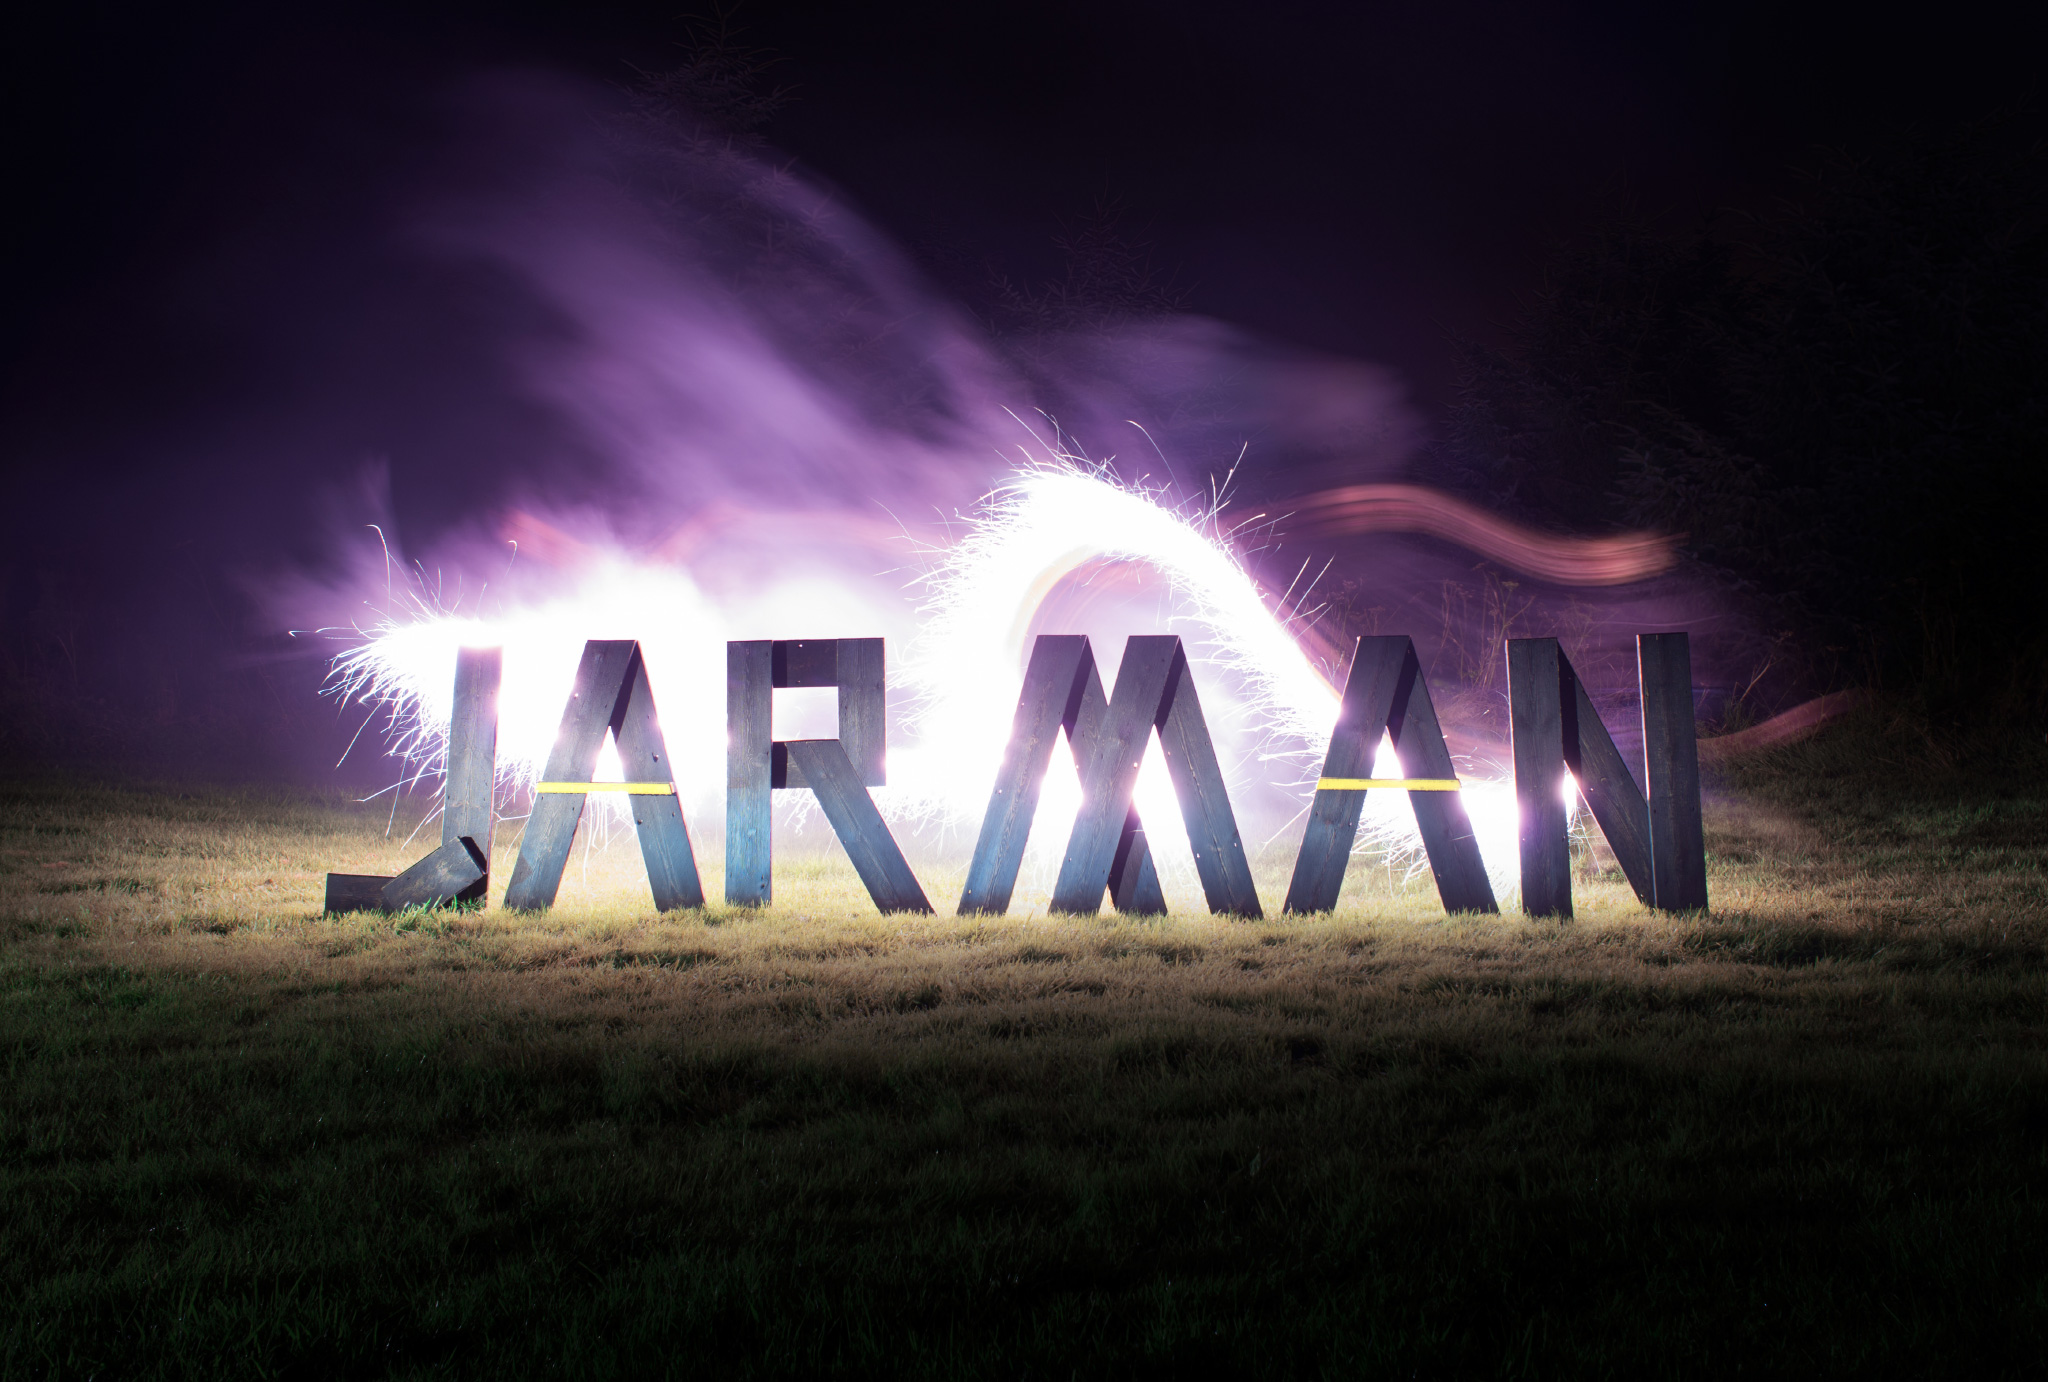 word 'JARMAN' made out of wooden letters standing on grass, in front of bright flair